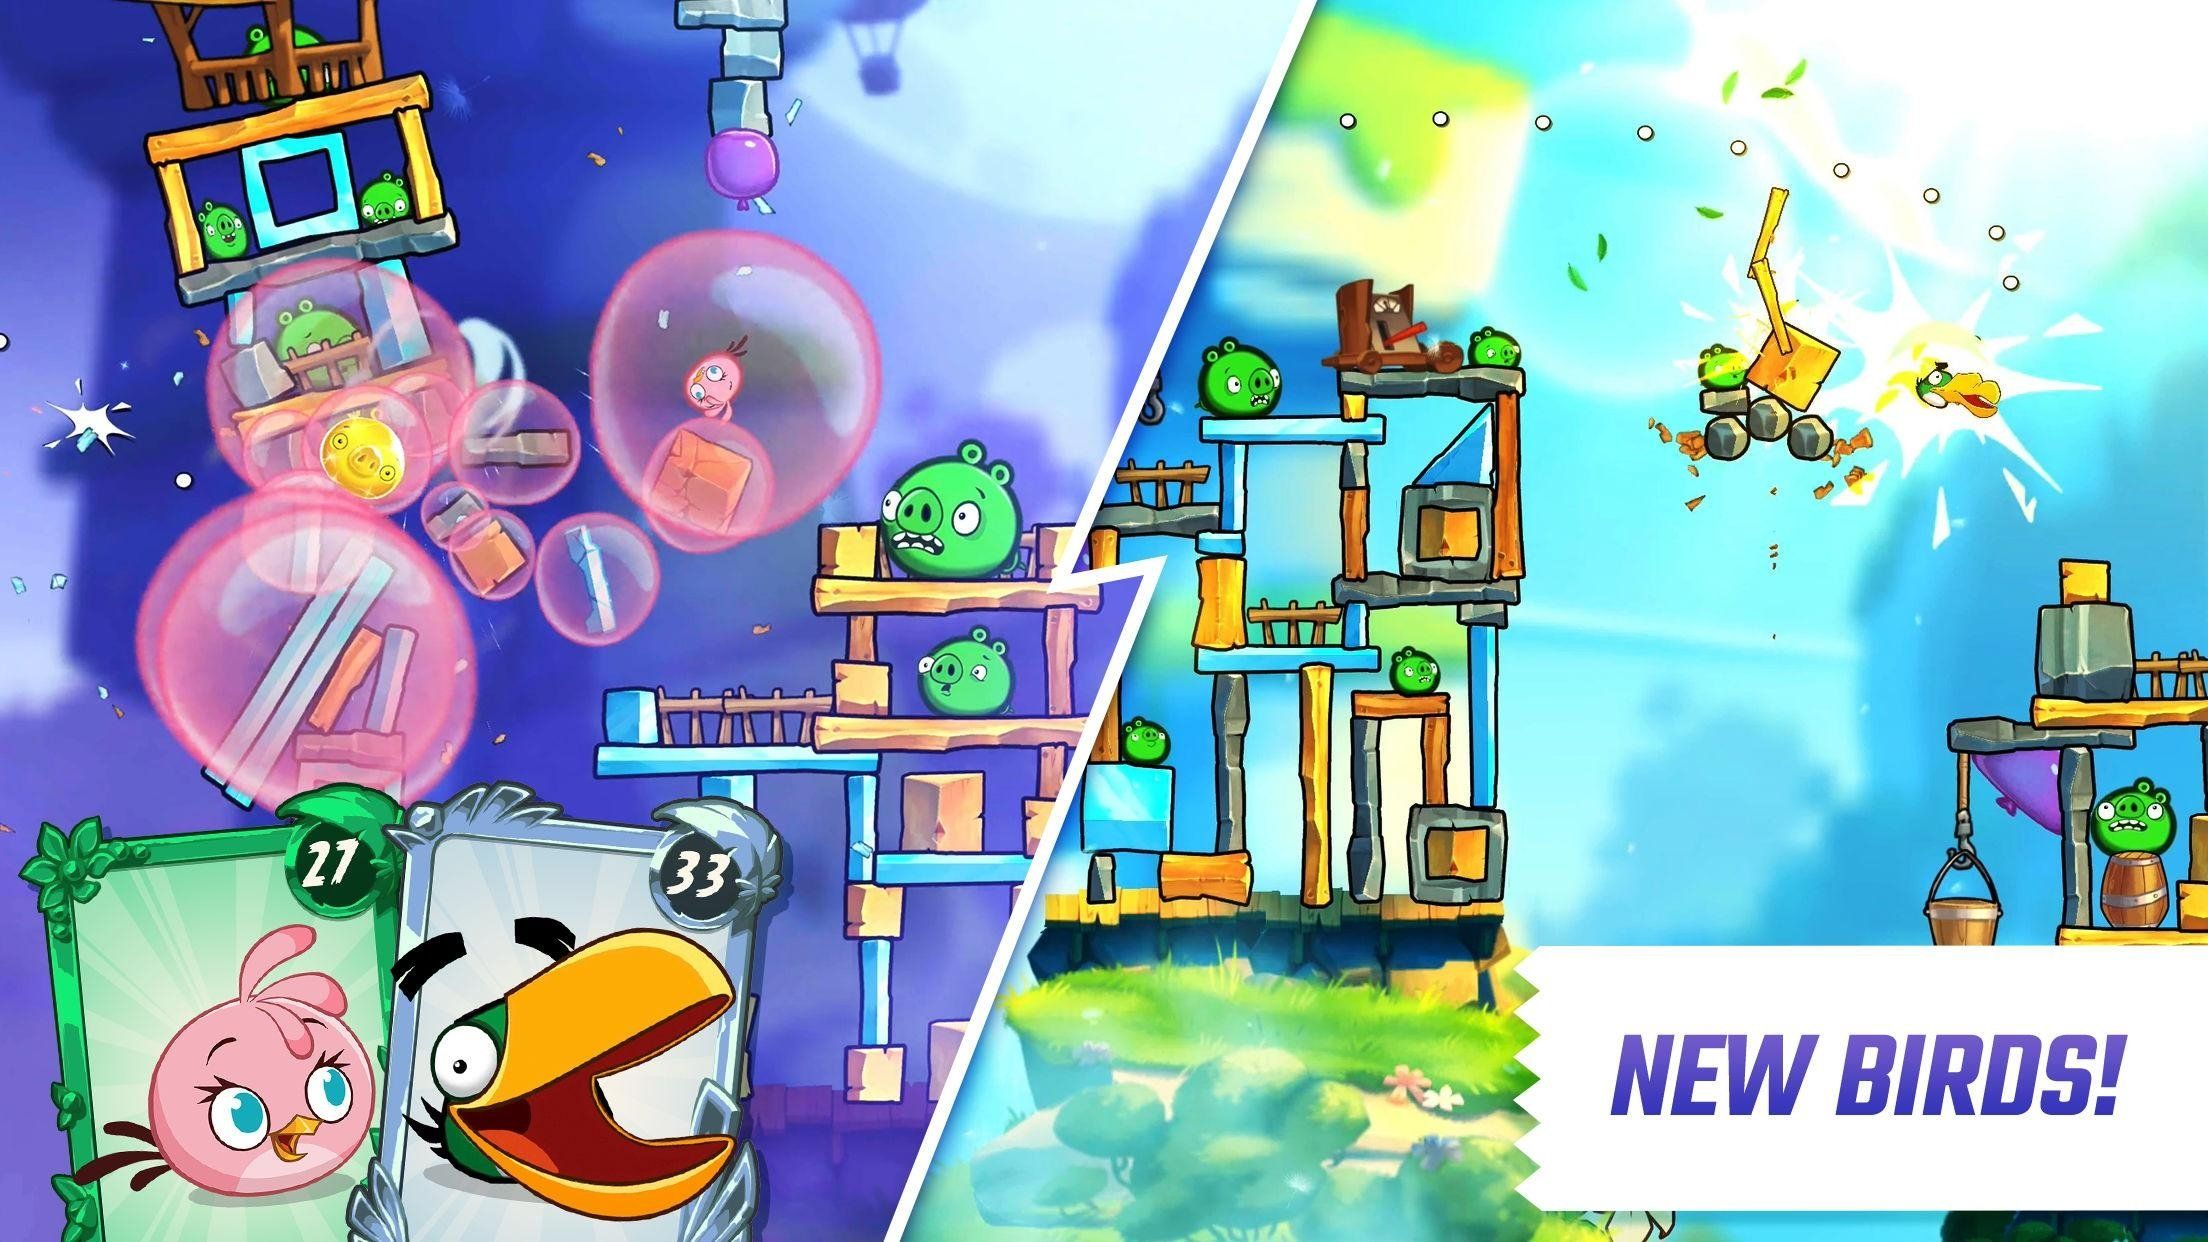 Angry Birds 2 Mod Apk Unlimited Money Free Download With Images